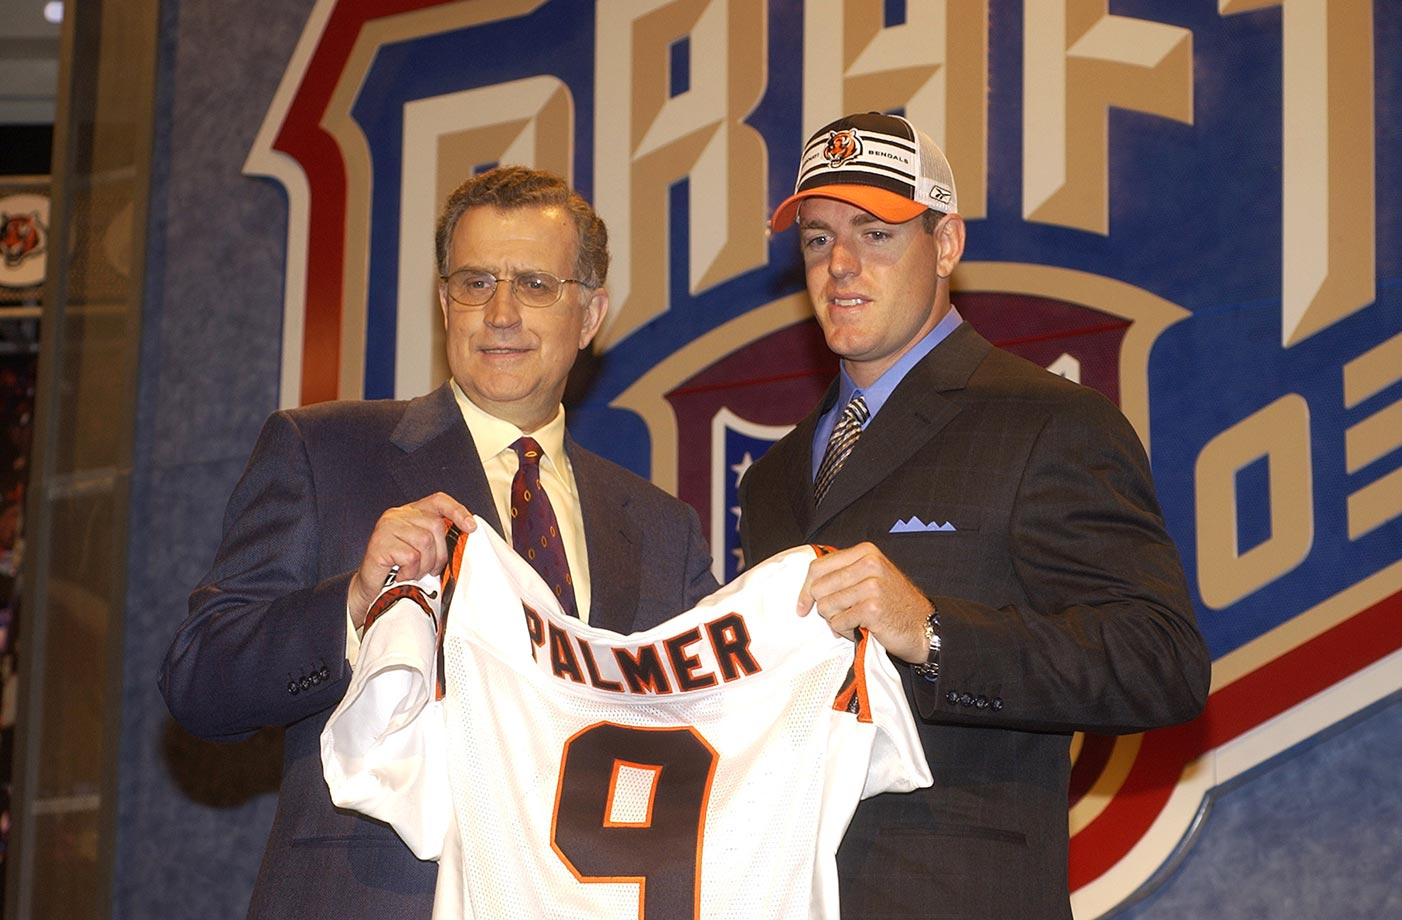 Palmer was drafted No. 1 overall in a draft that also saw Andre Johnson, Terrell Suggs, Terence Newman and Troy Polamalu go in the first round.